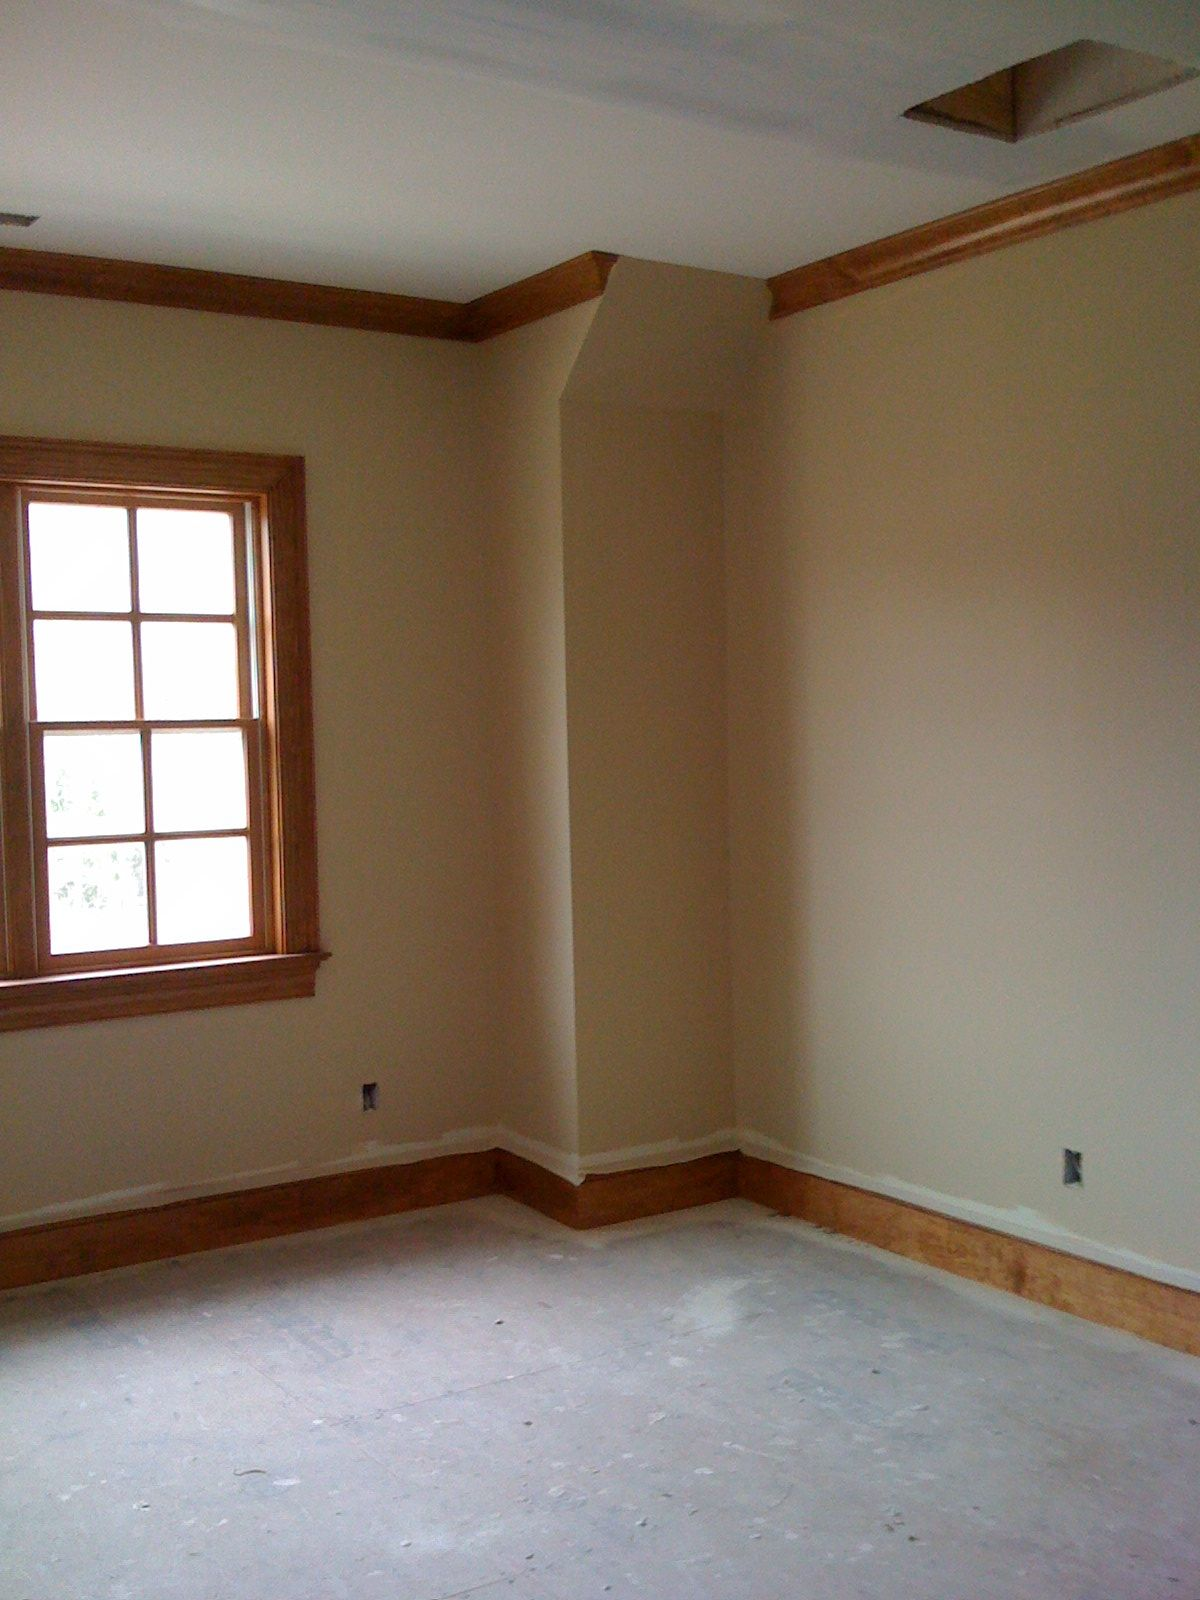 Paint Color Nice Complement To Stain On Trim